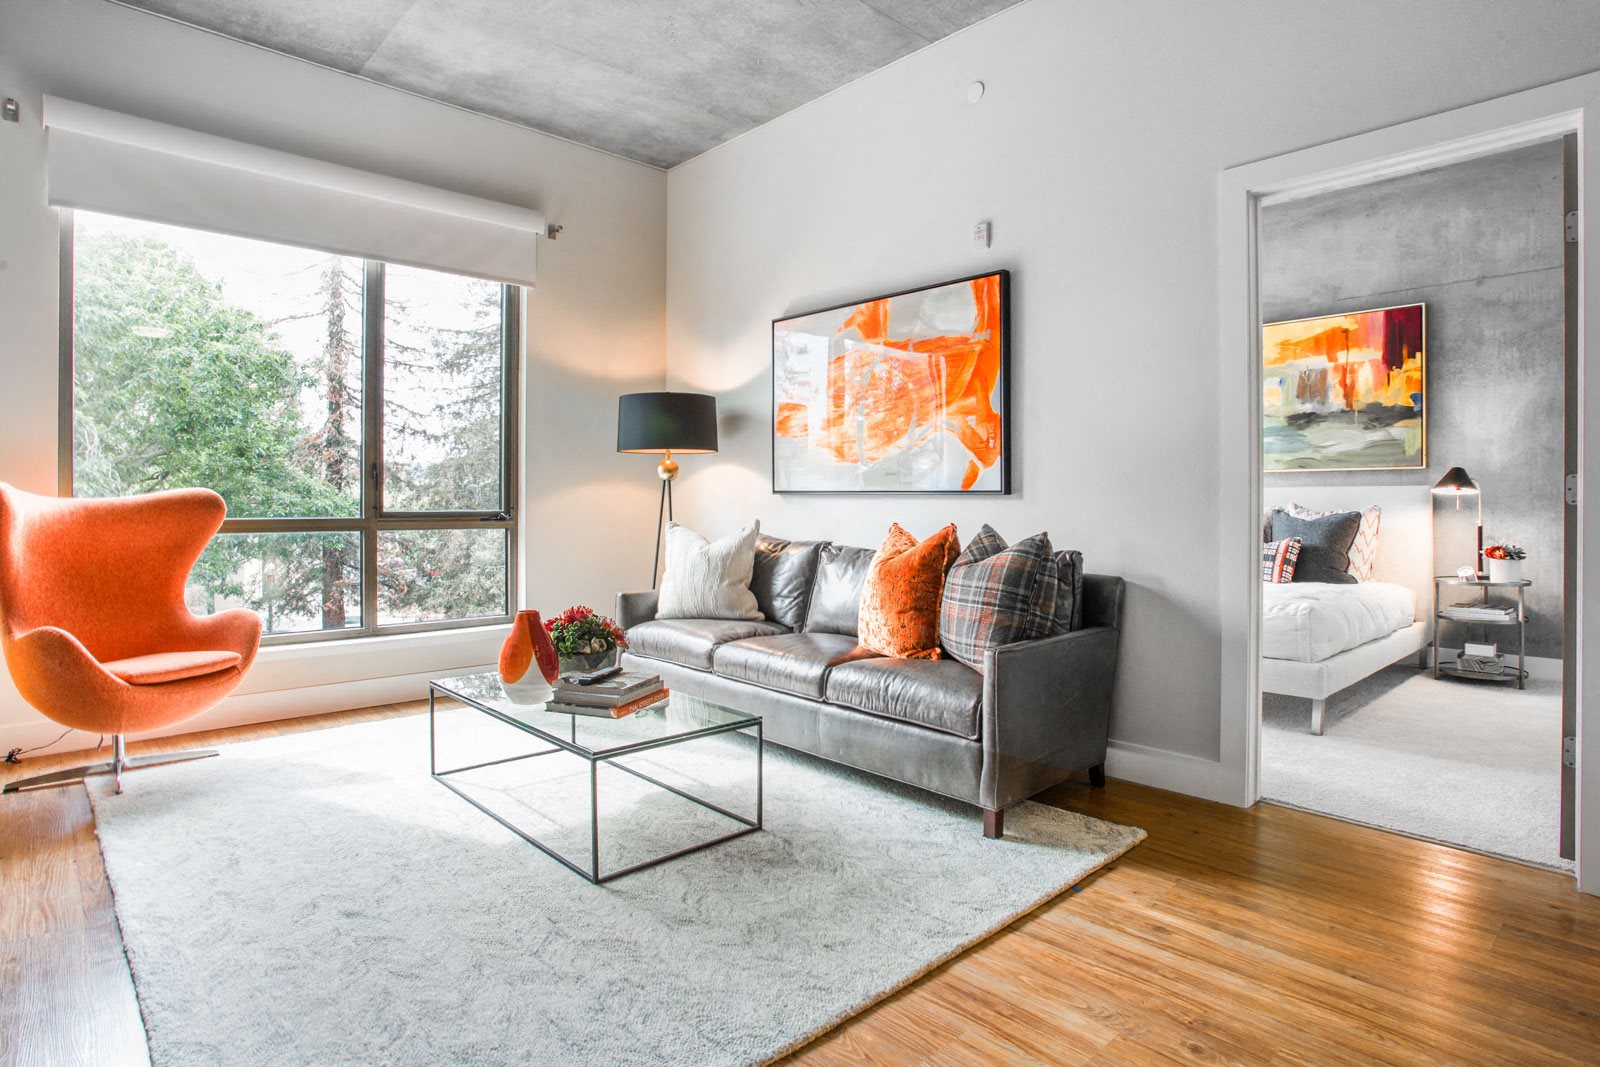 Open Floor Plan at The Marston by Windsor, 825 Marshall Street, CA